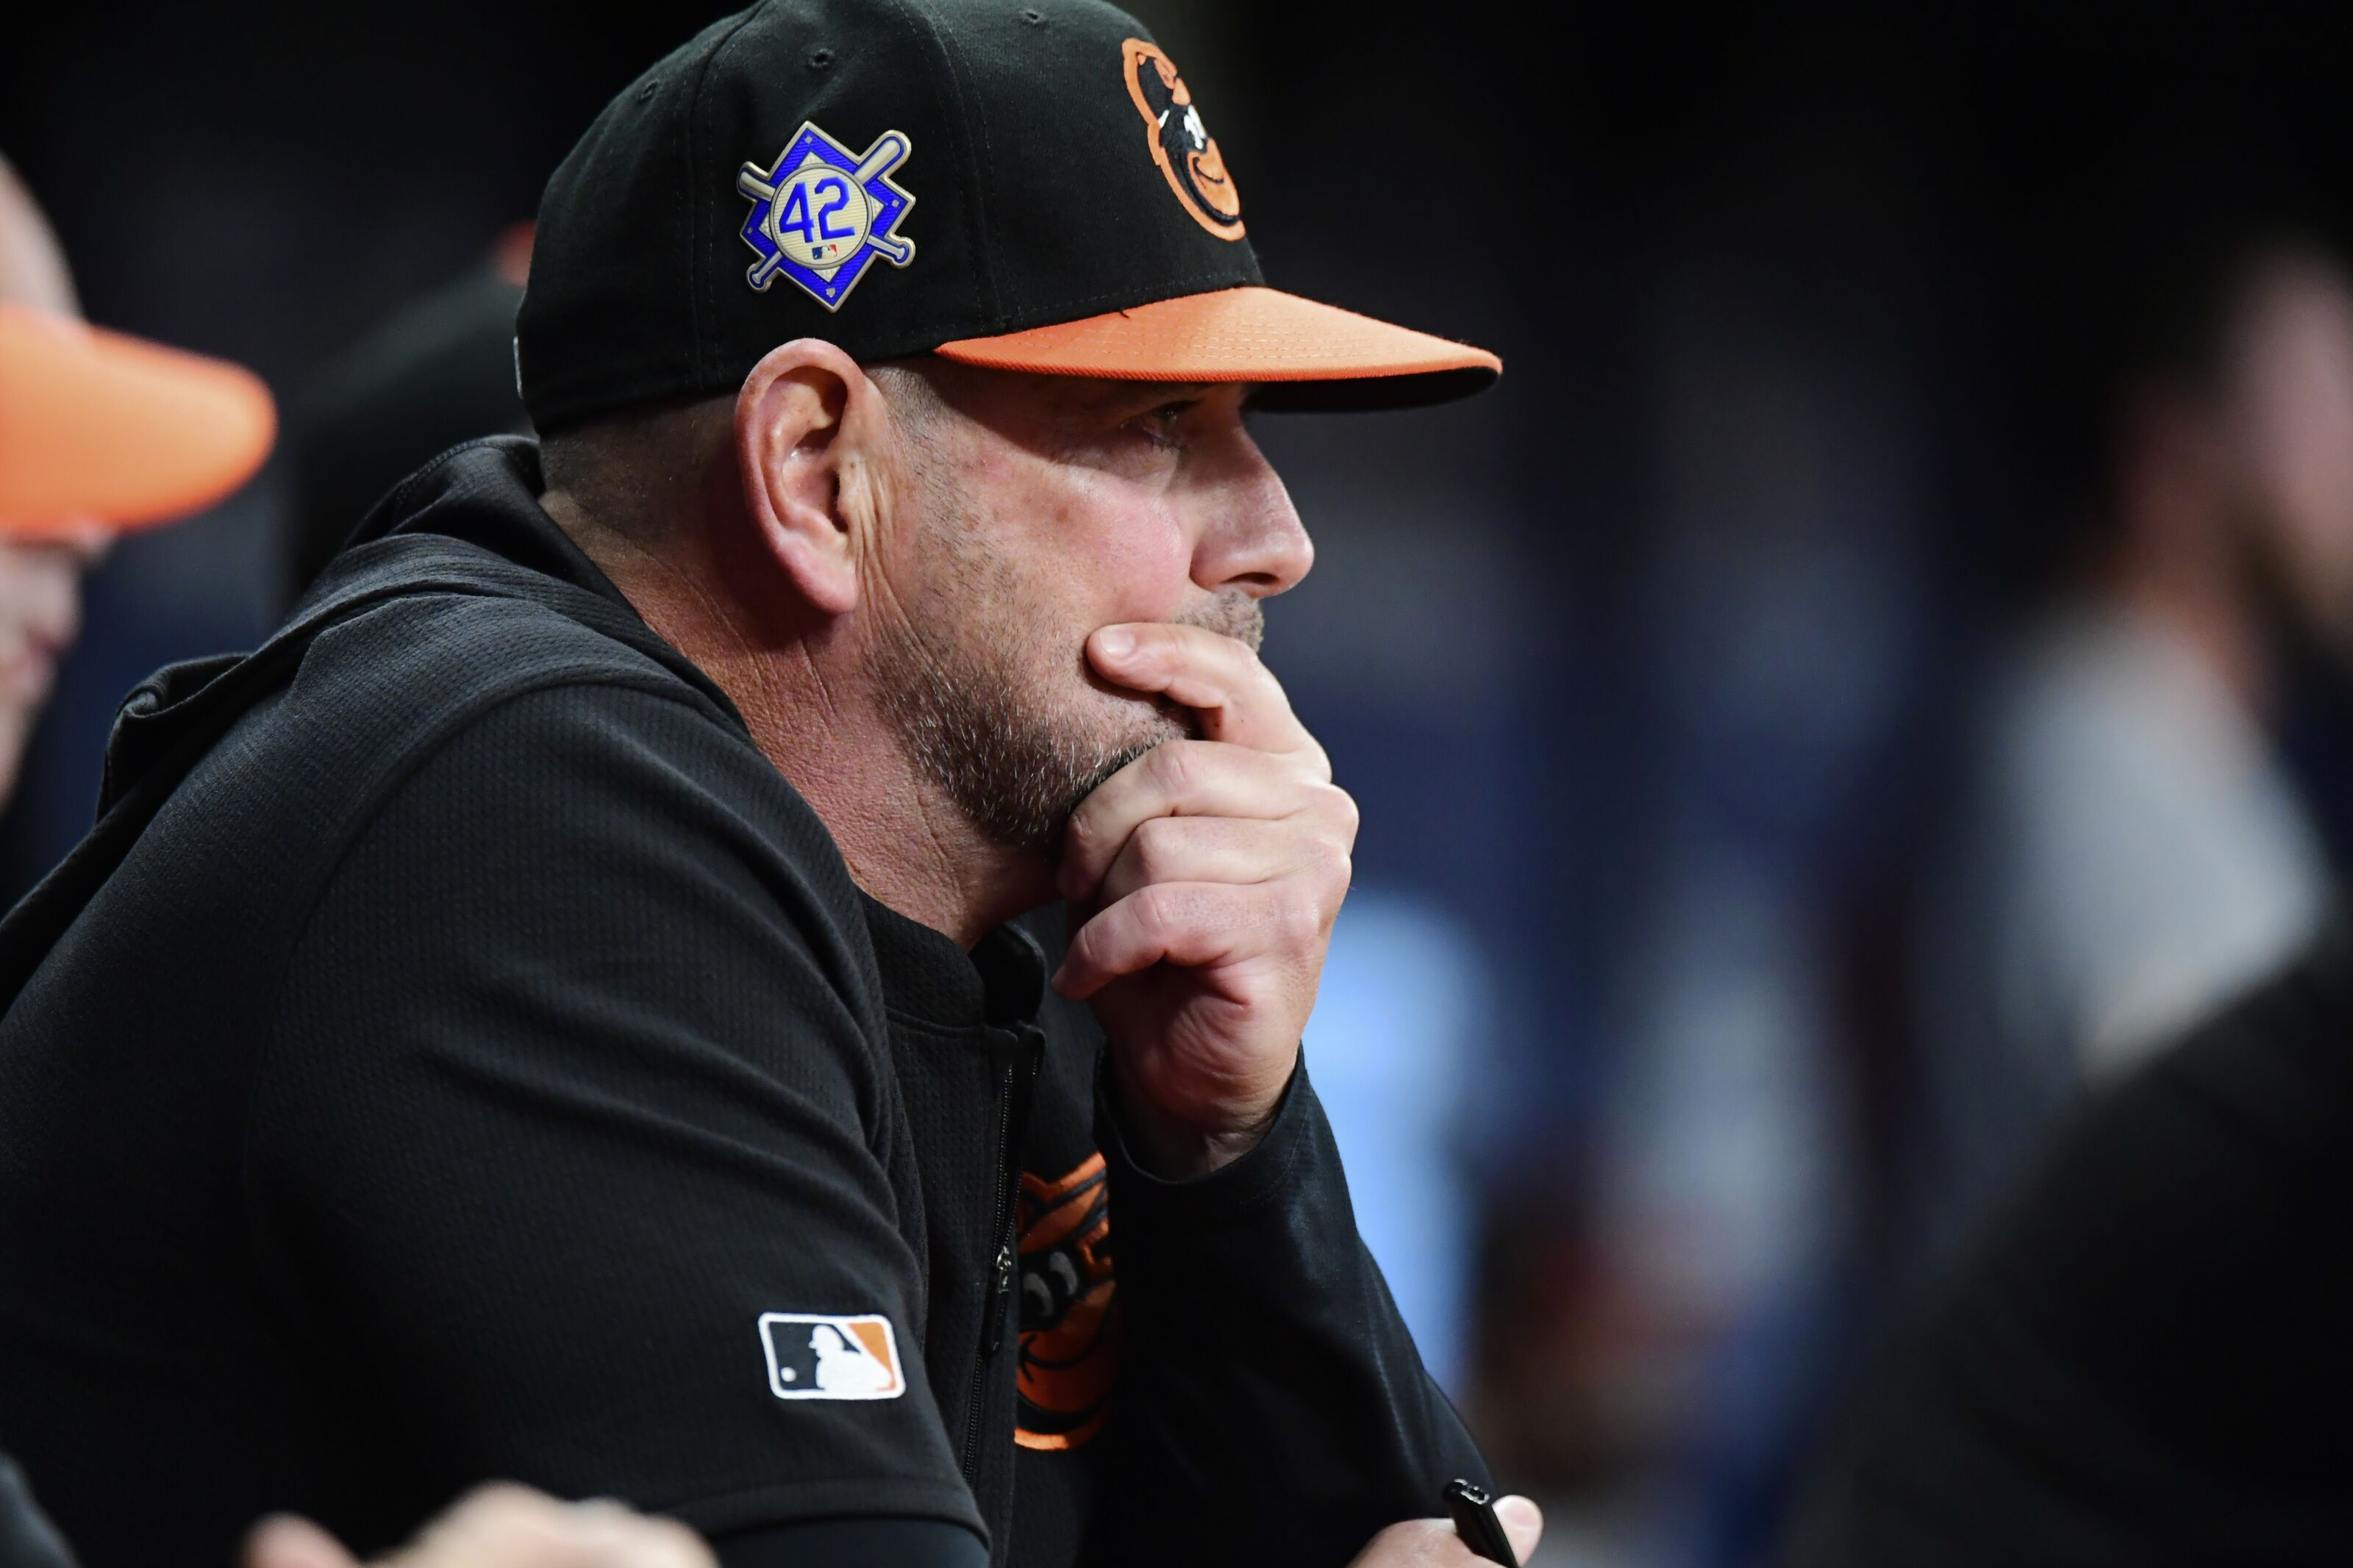 Baltimore Orioles: Where Will We See The Most Improvement In 2020?